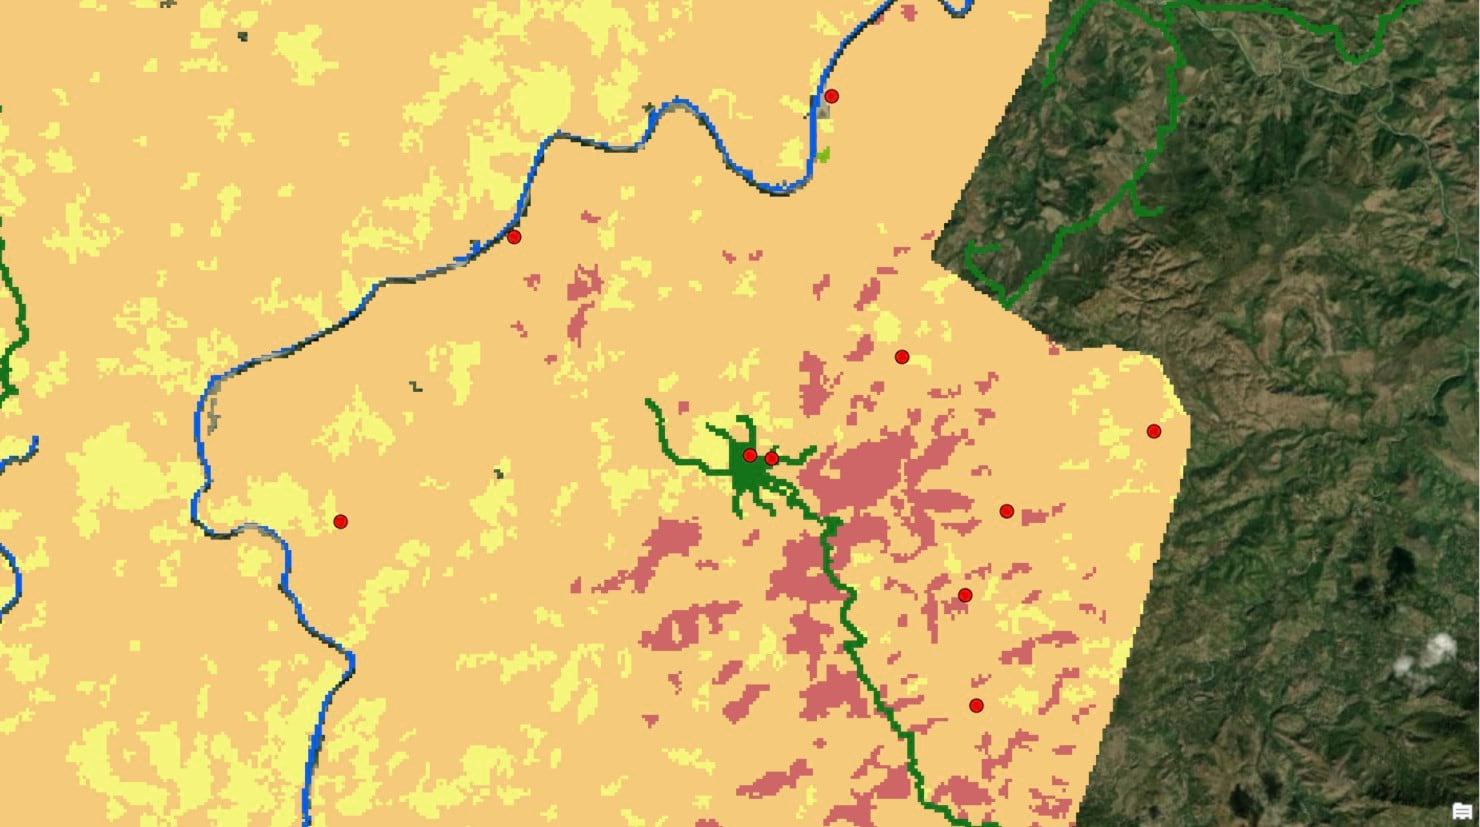 An example of cost raster is shown. Each color represents a different surface type (road, agriculture, and forest).